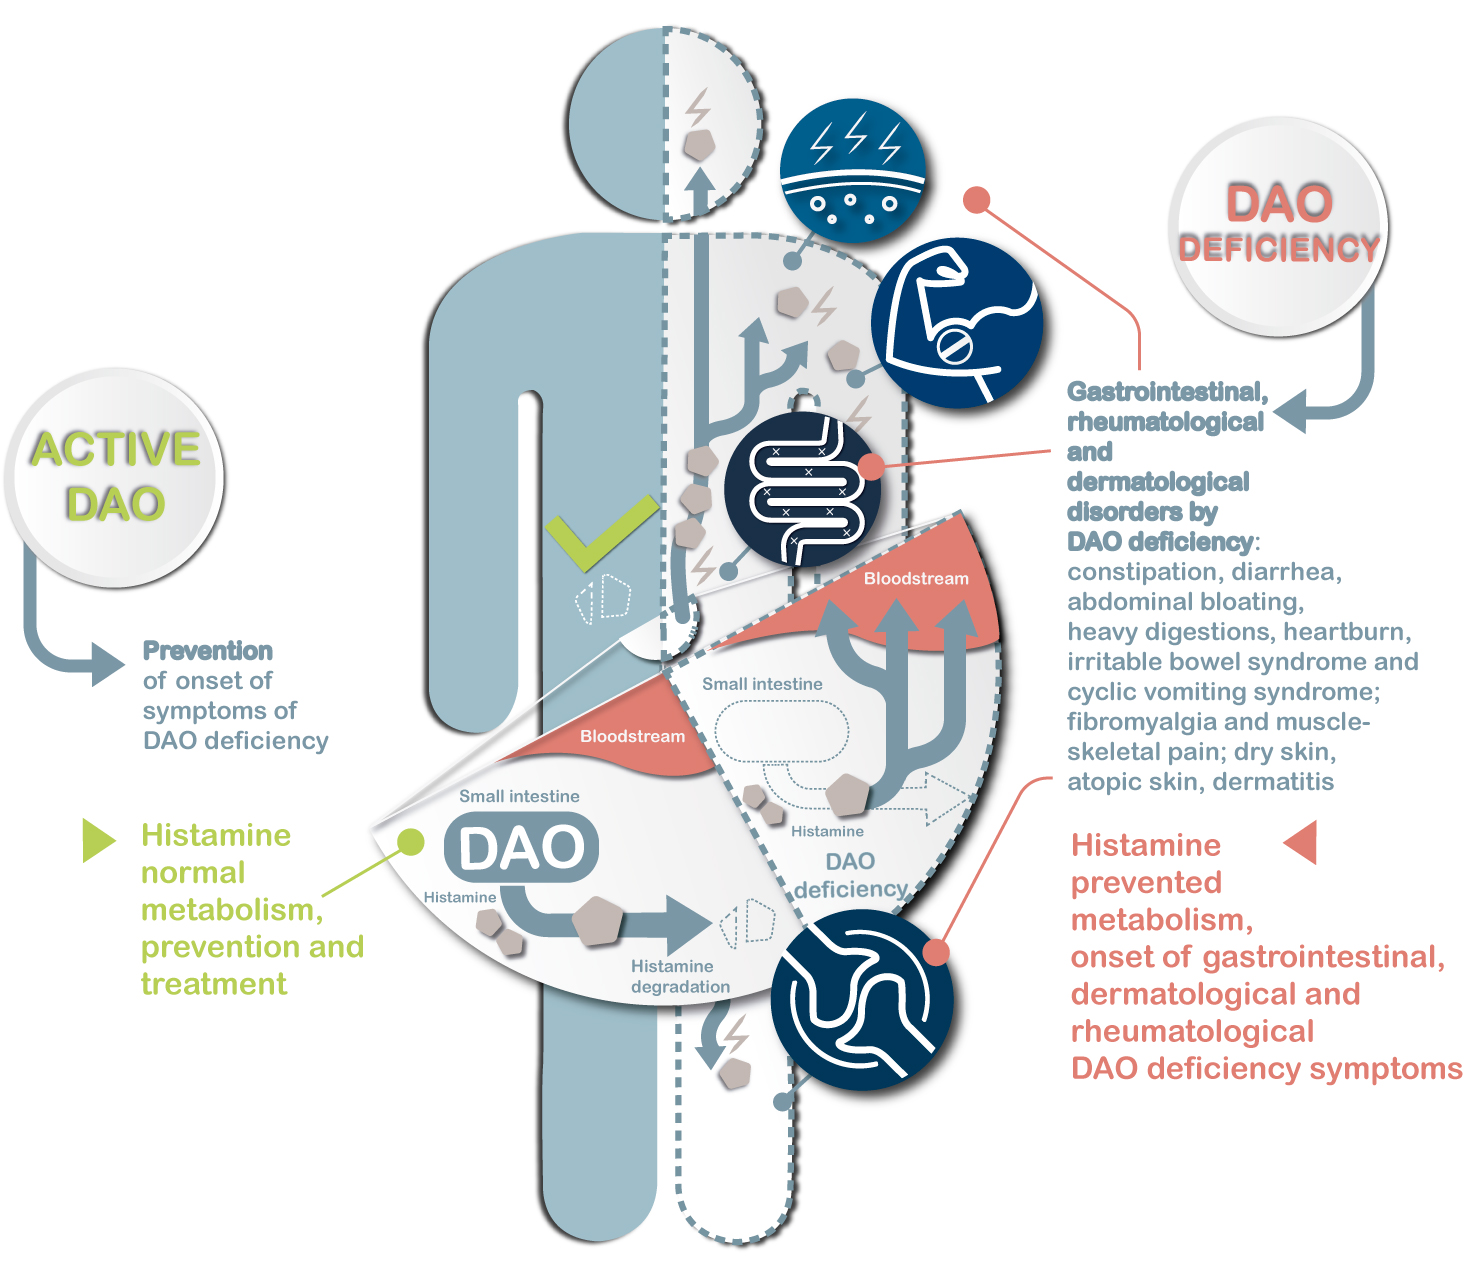 DAO-Food-en-infographic-DAO-deficiency-gastrointestinal-cutaneous-rheumatological-symptoms